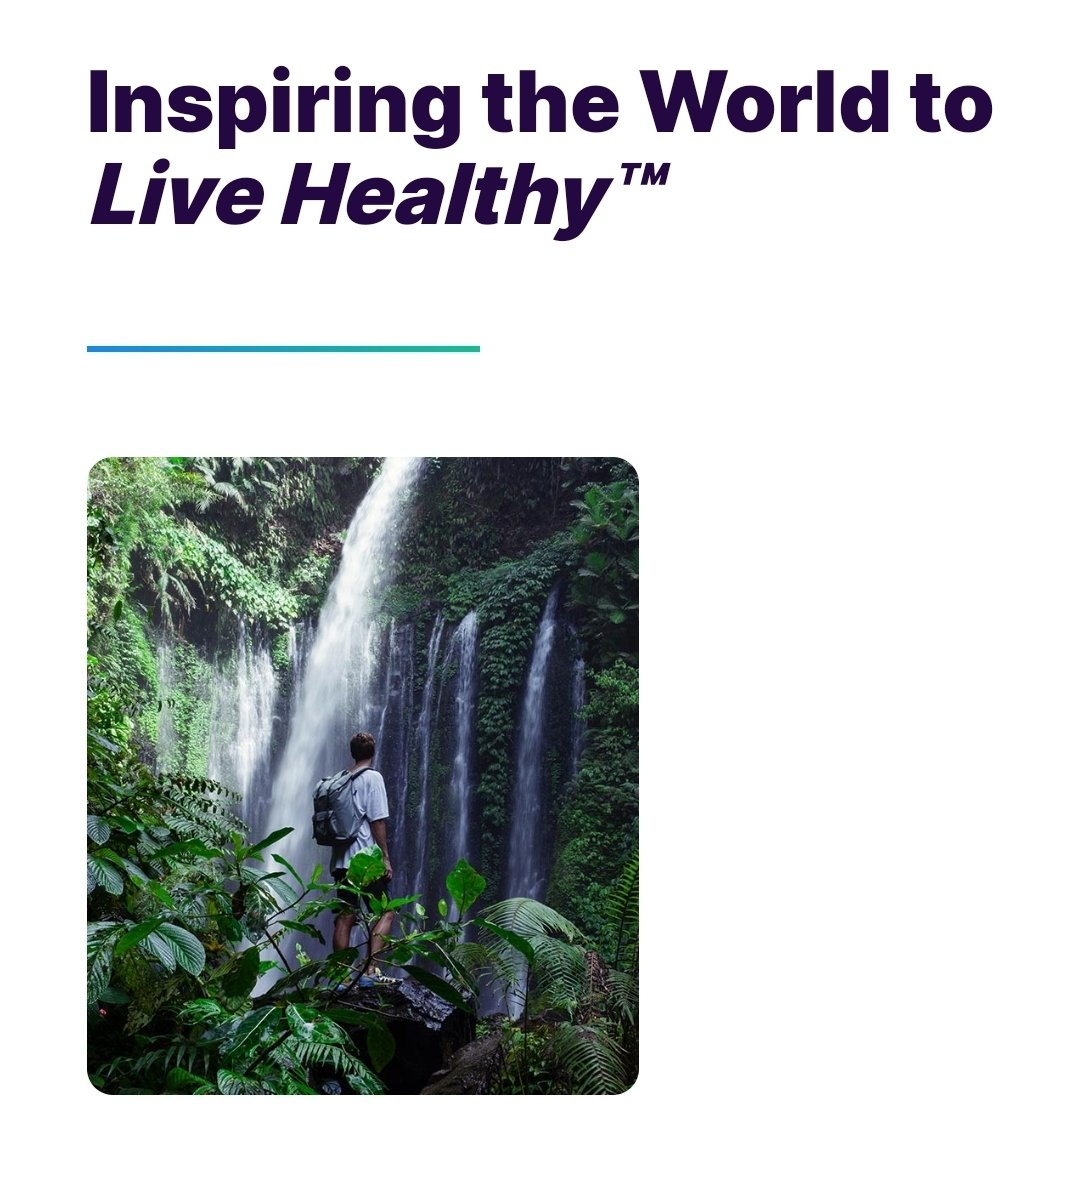 Inspiring the World to Live Healthy